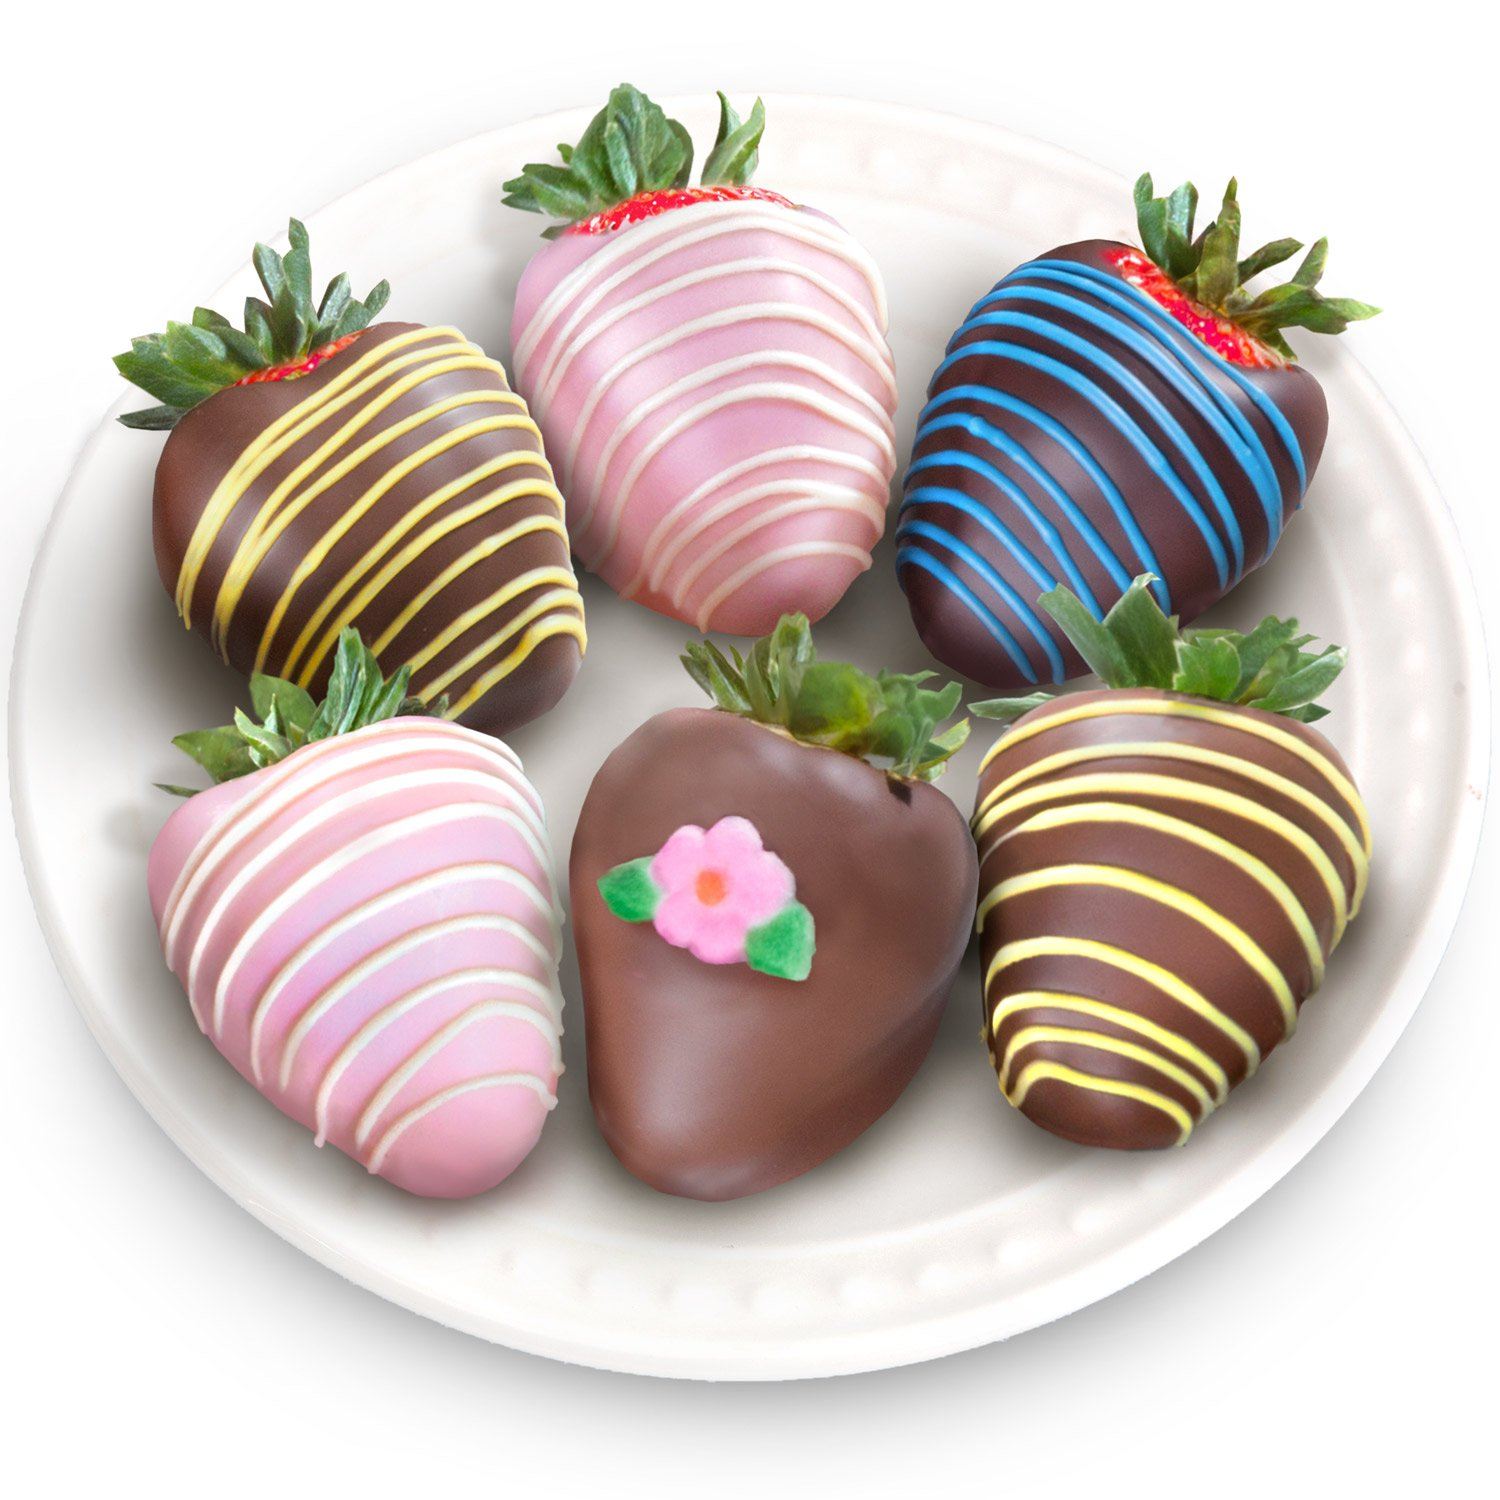 Golden State Fruit 6 Piece Chocolate Covered Strawberries by Golden State Fruit (Image #1)